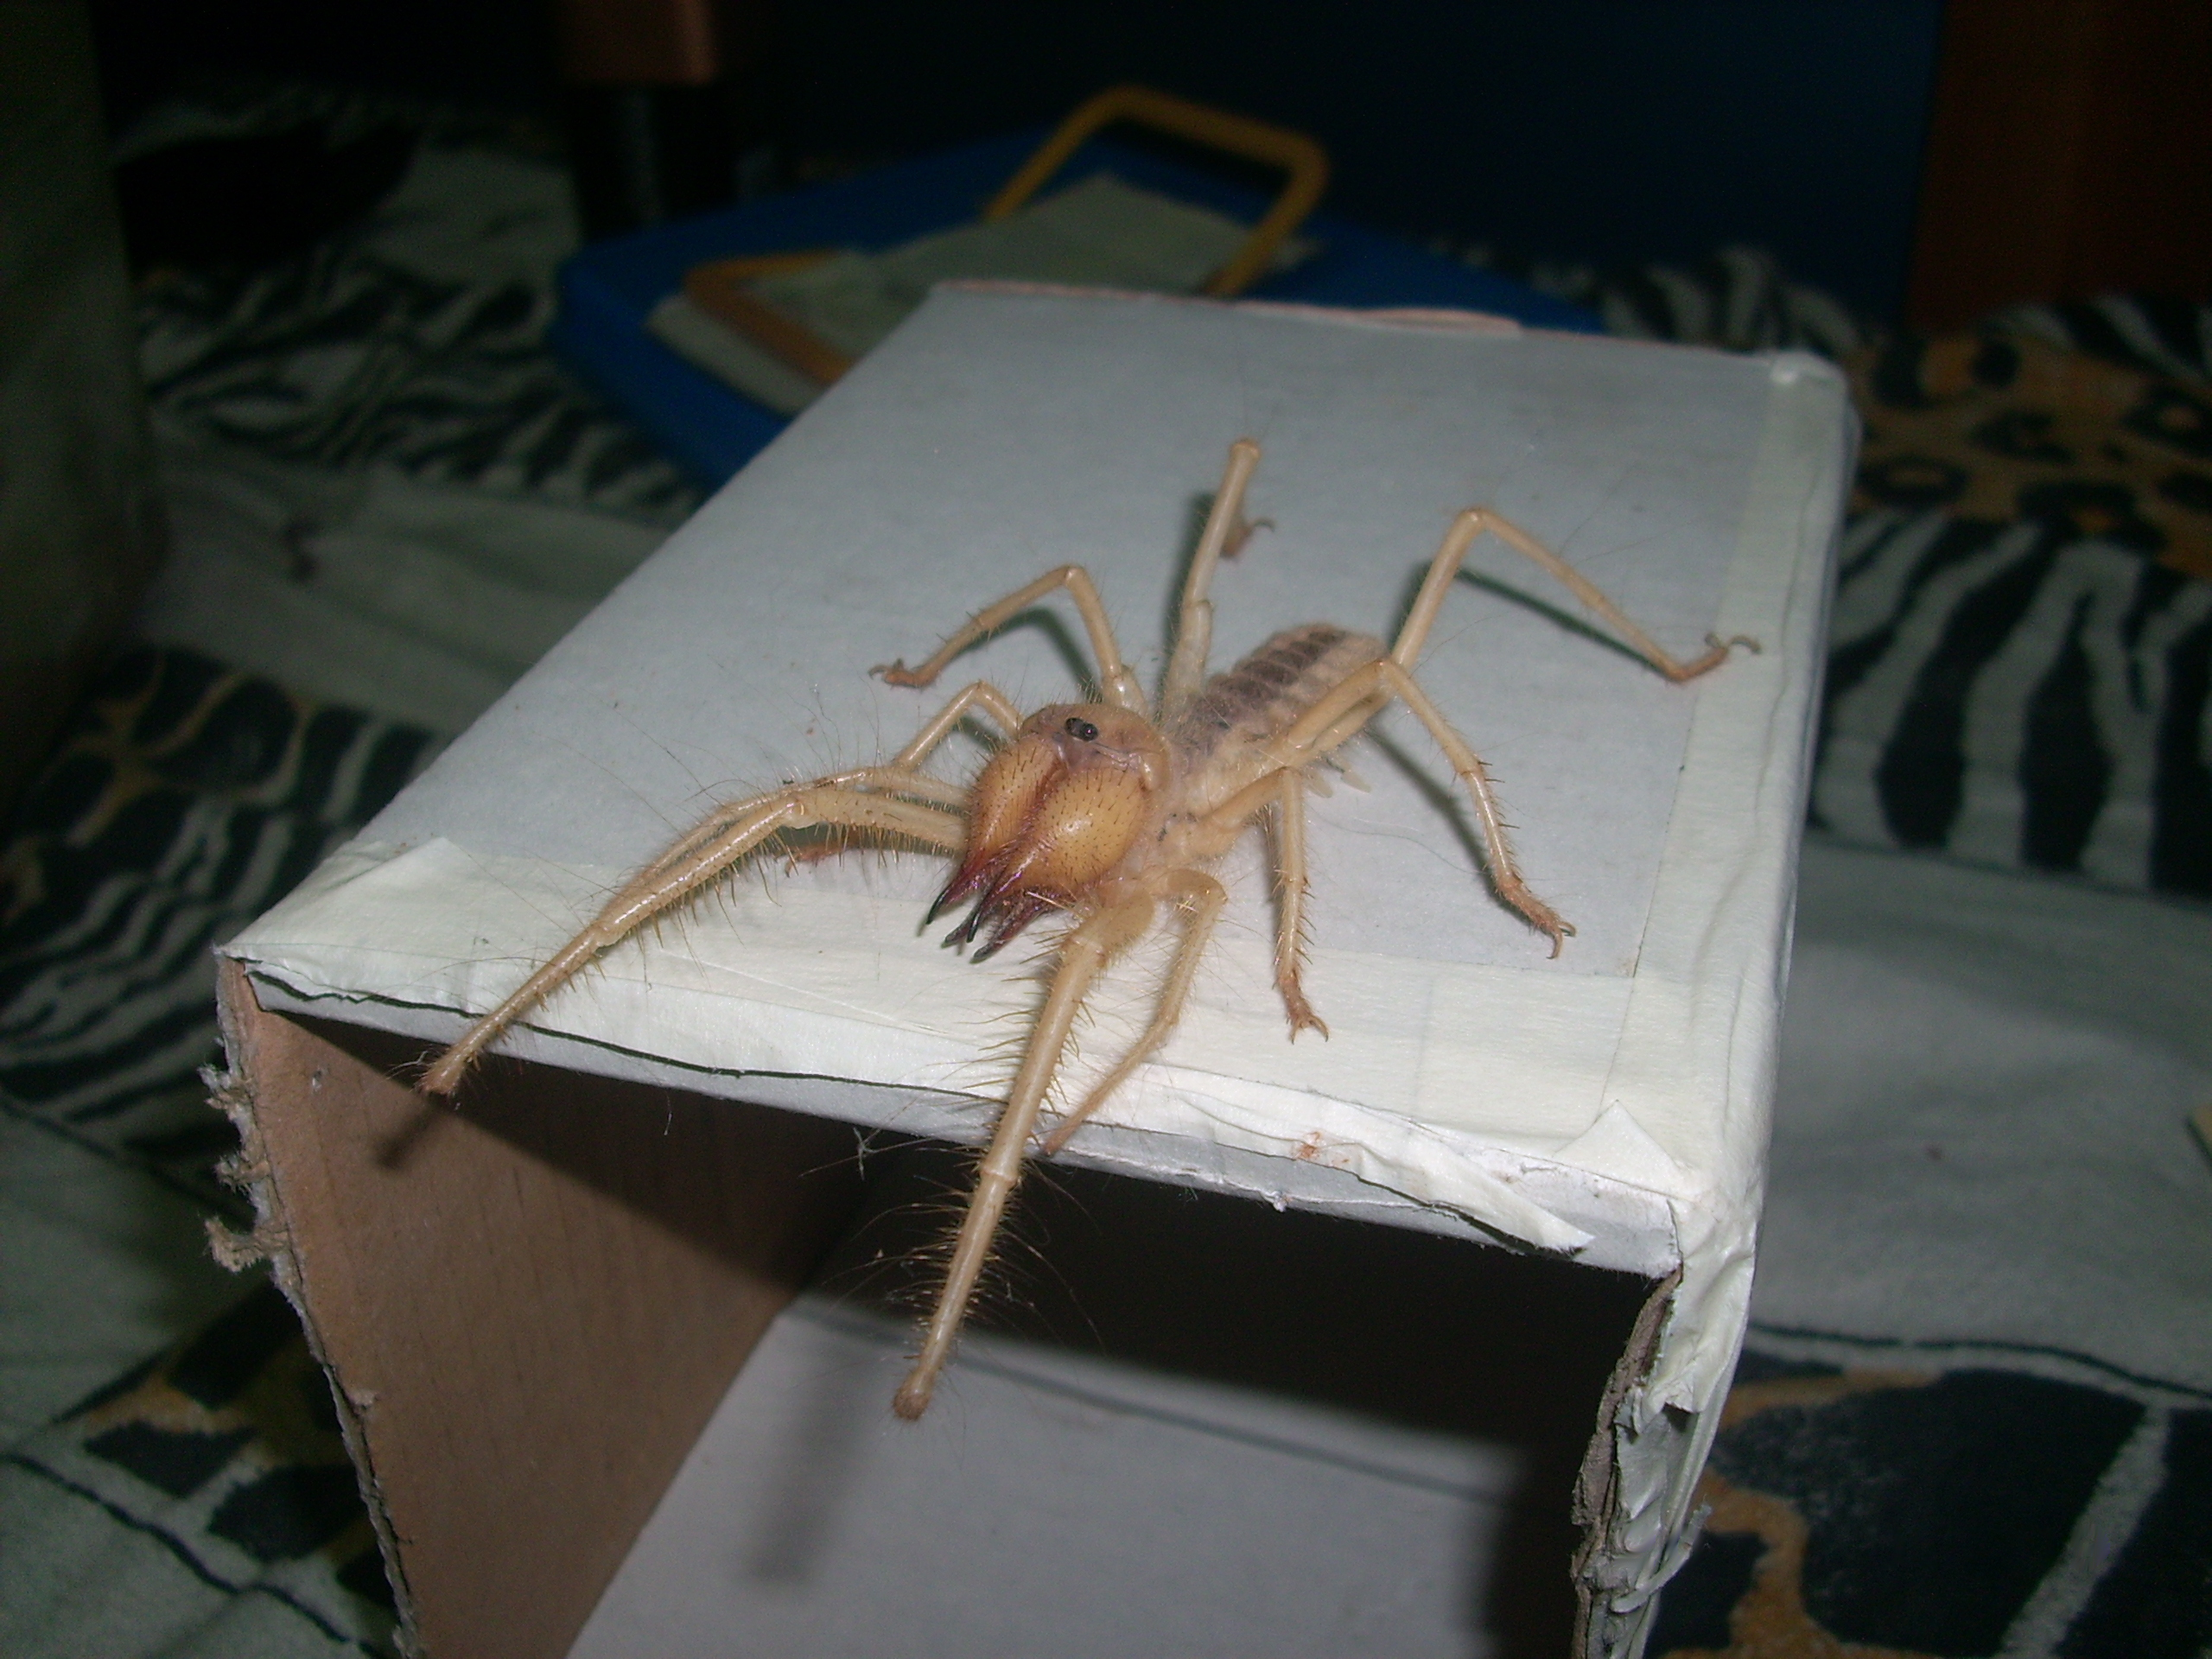 Giant Camel Spider Size